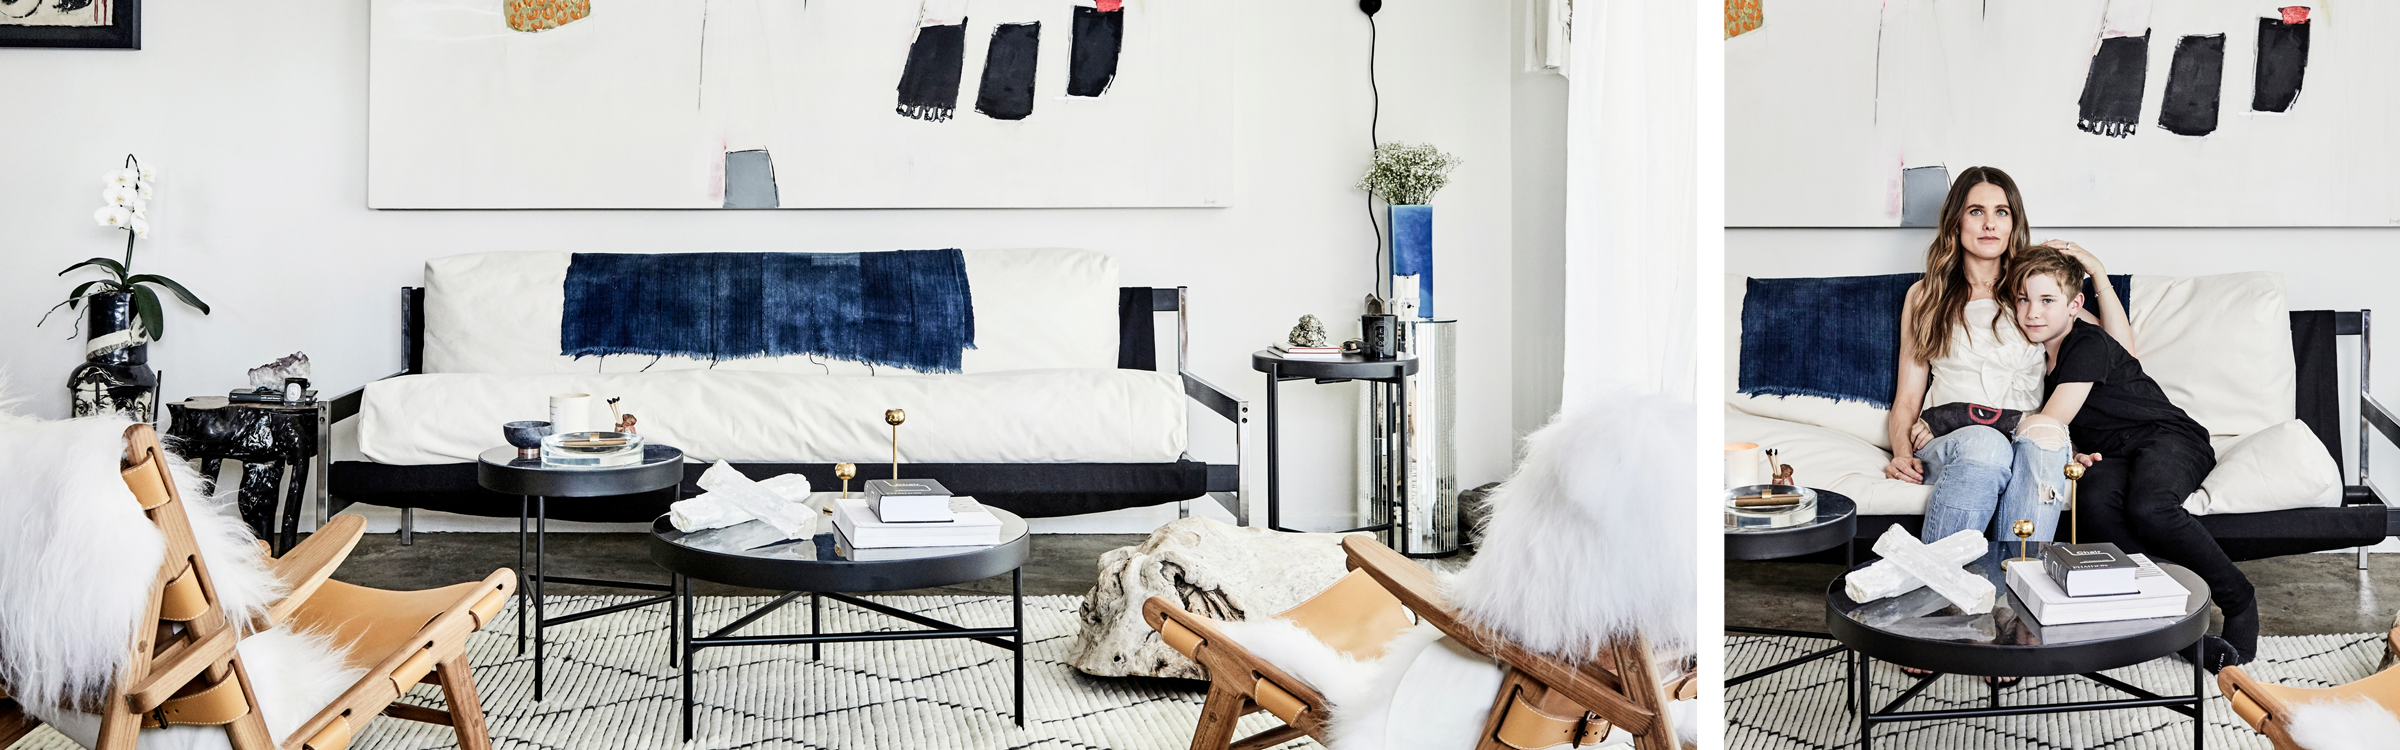 MyDomaine's Small-Space Edit - Magazine cover